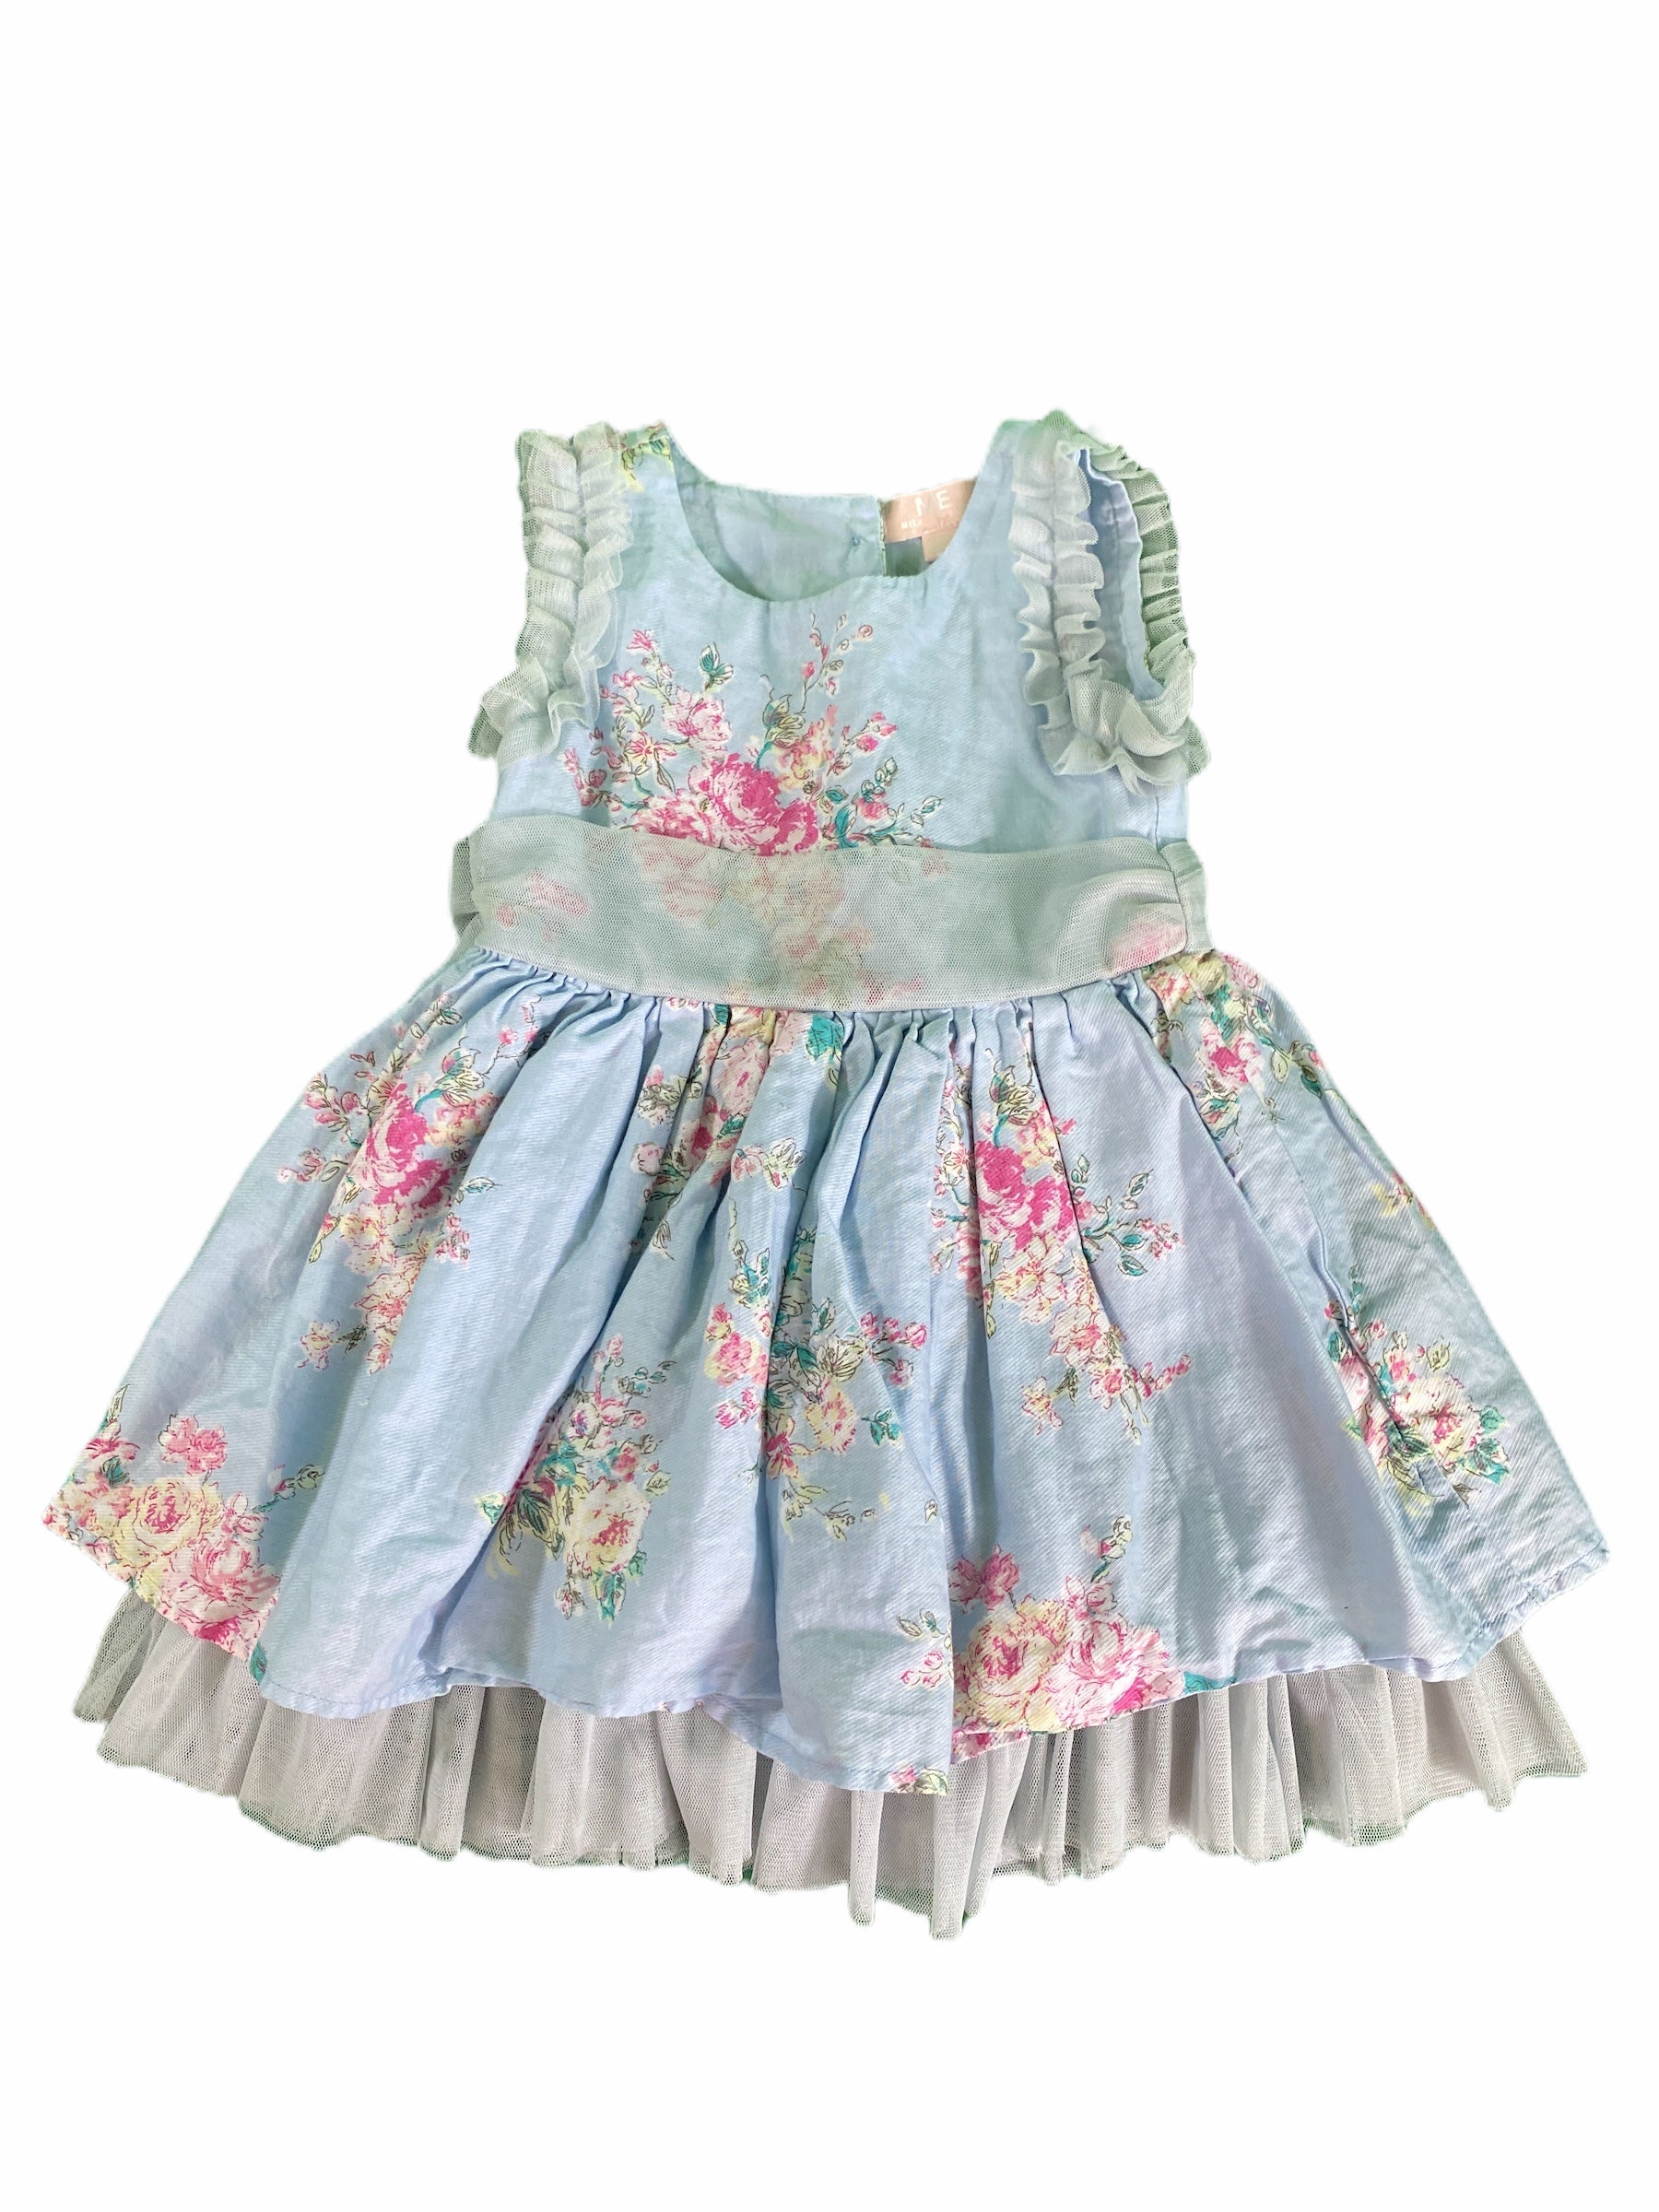 Mila & Emma Blue Floral Tulle Dress (18M Girls)